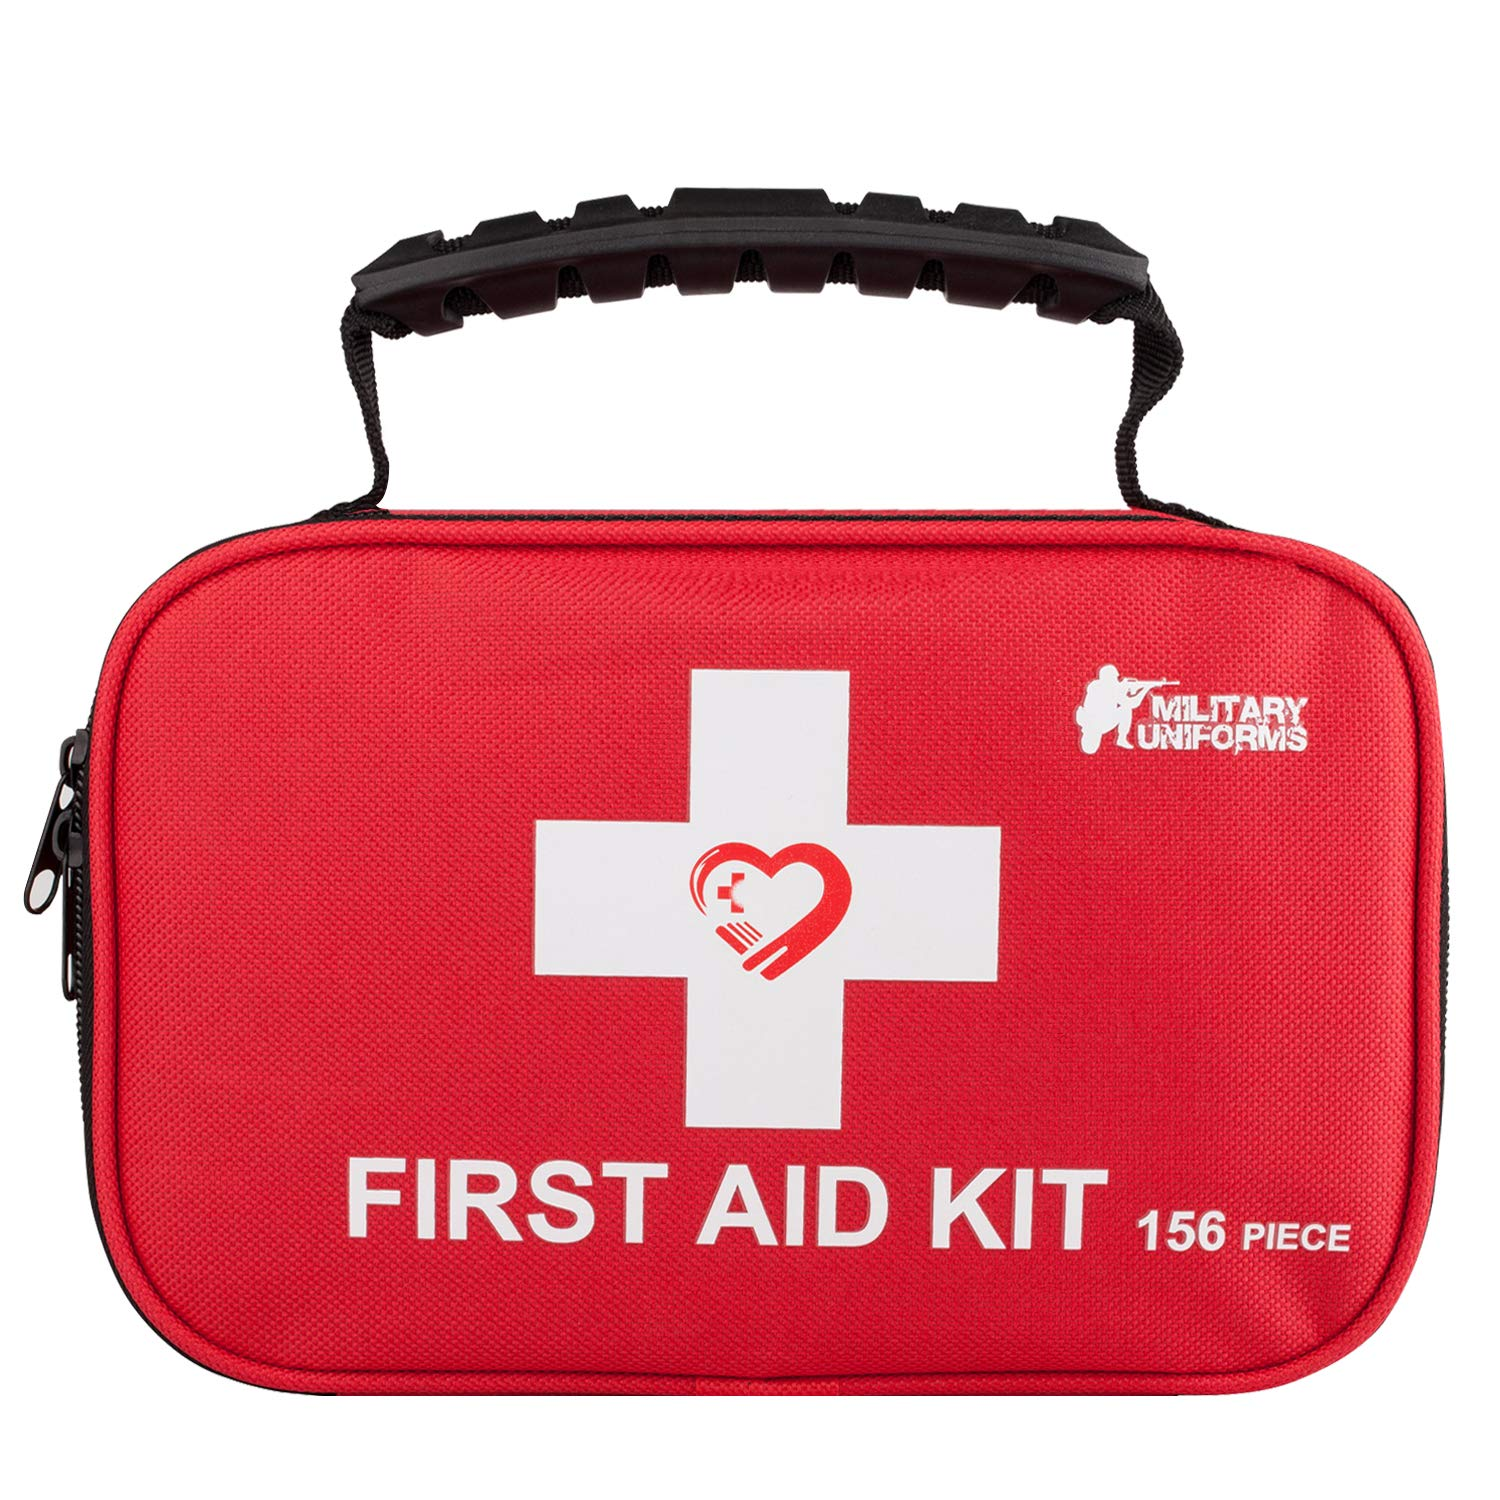 First aid kit,All-Purpose aid kit and Compact Emergency kit First aid for Office,aid Kit Medical for Outdoors,Hiking…